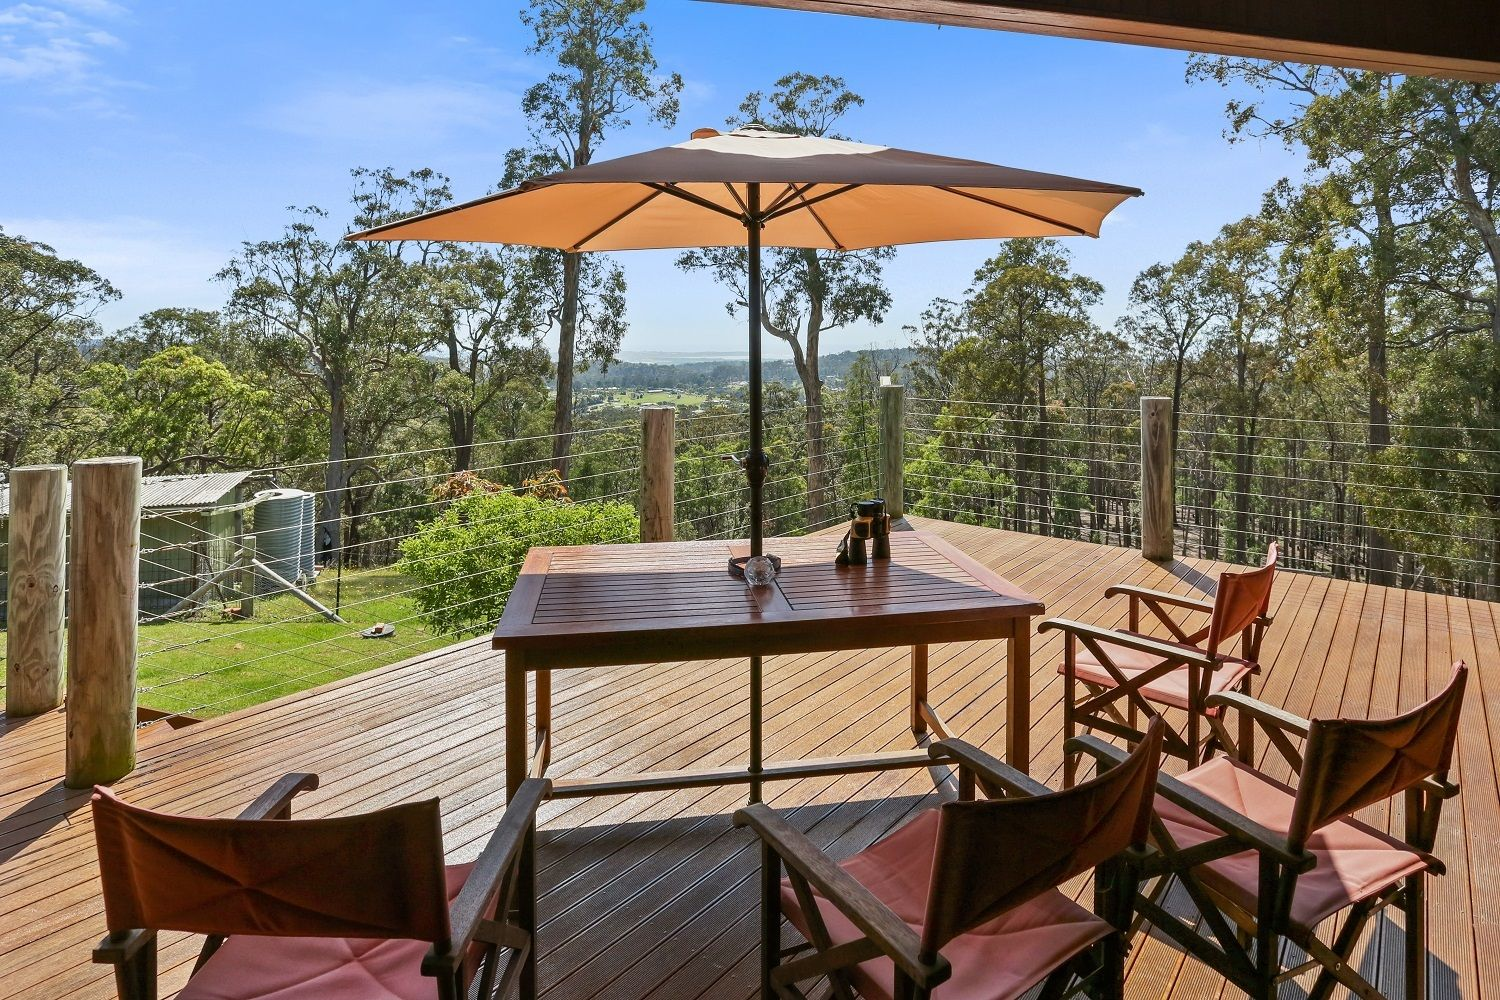 426 Oaklands Rd, BALD HILLS Via, Pambula NSW 2549, Image 2